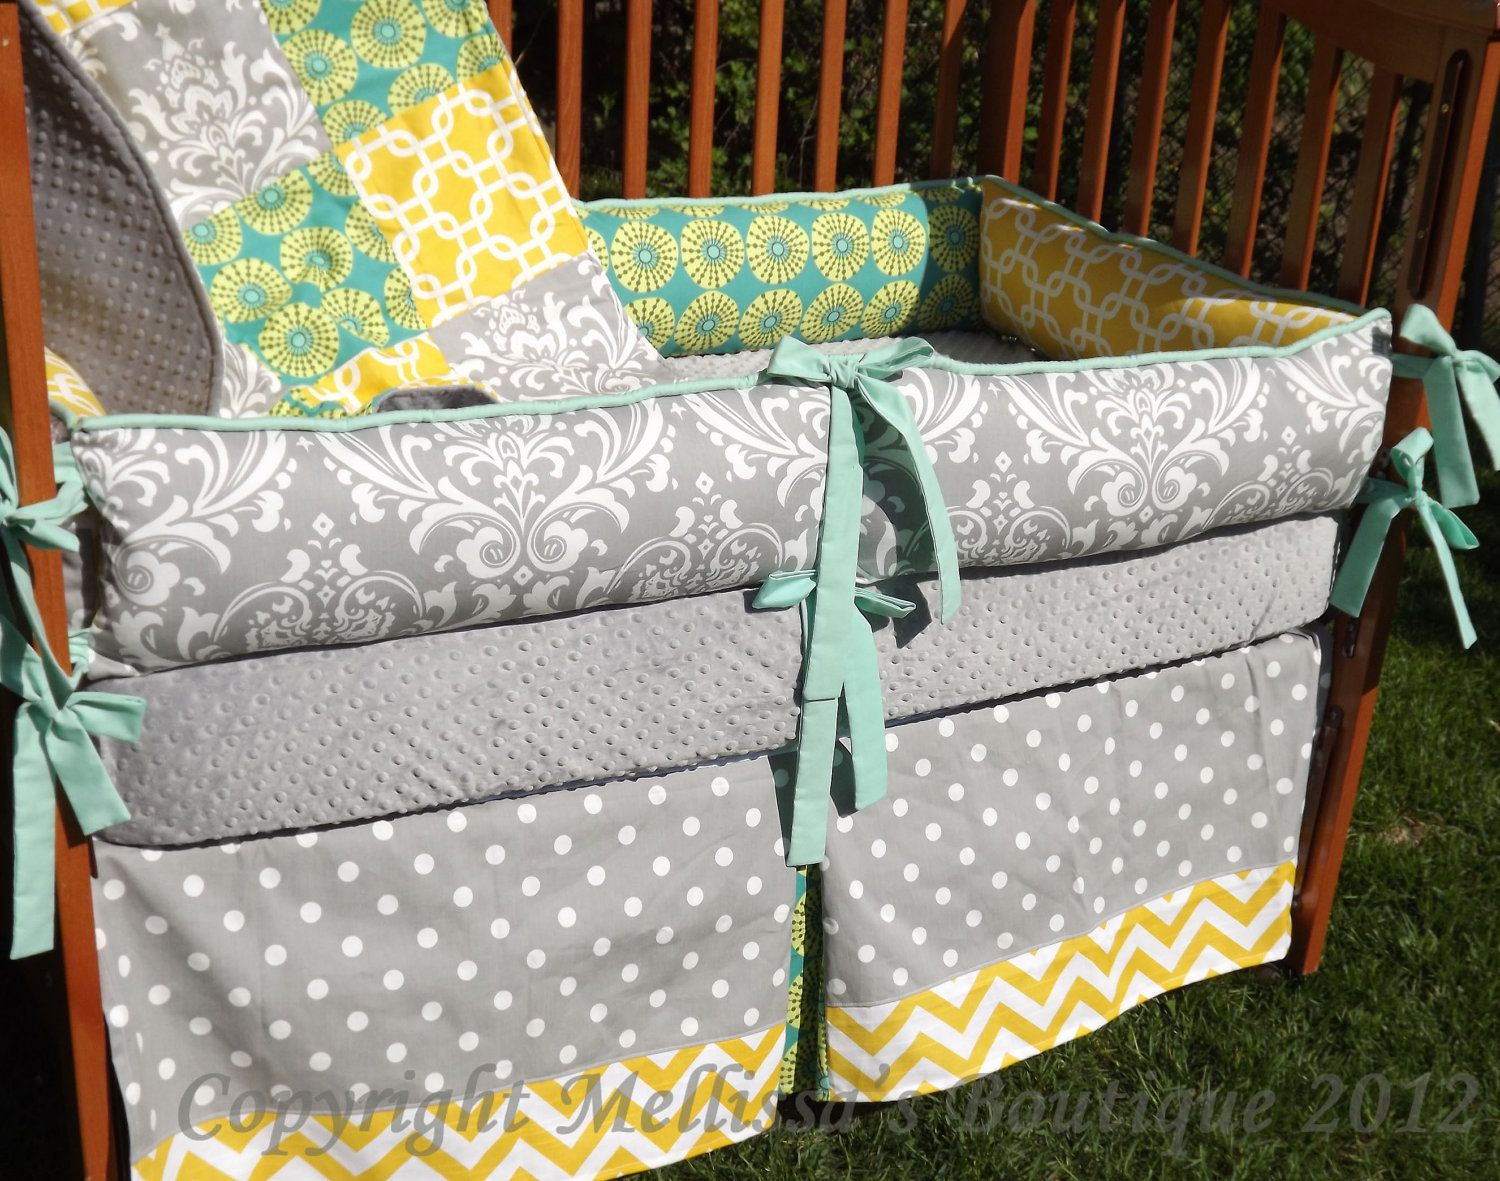 Baby Nursery Yellow Grey Gender Neutral On Custom Grey With Teal And Yellow Accent 4piece Complete Boutique Crib Nursery Bedding Set Gender Neutral 41499 Via Etsy